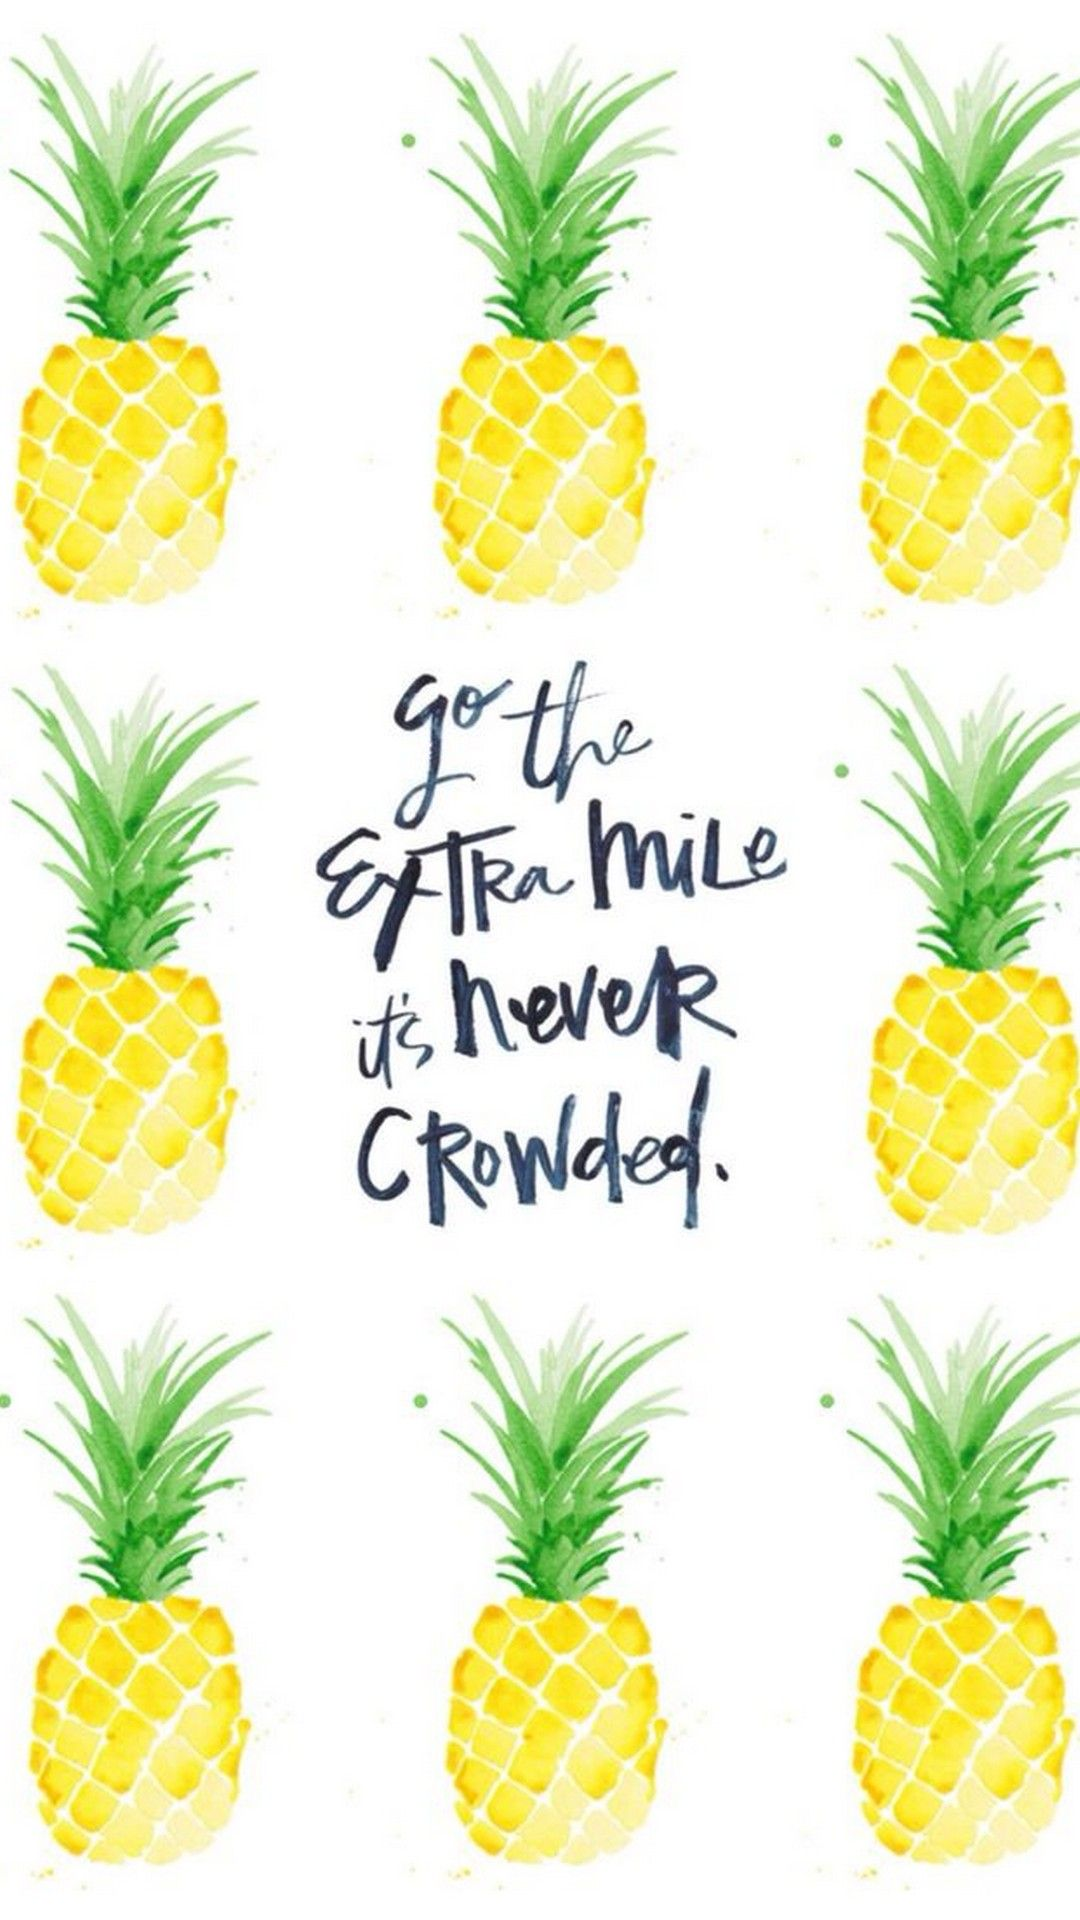 Cute Quotes Iphone X Wallpaper Hd Best Phone Wallpaper Pineapple Backgrounds Pineapple Wallpaper Pineapple Quotes